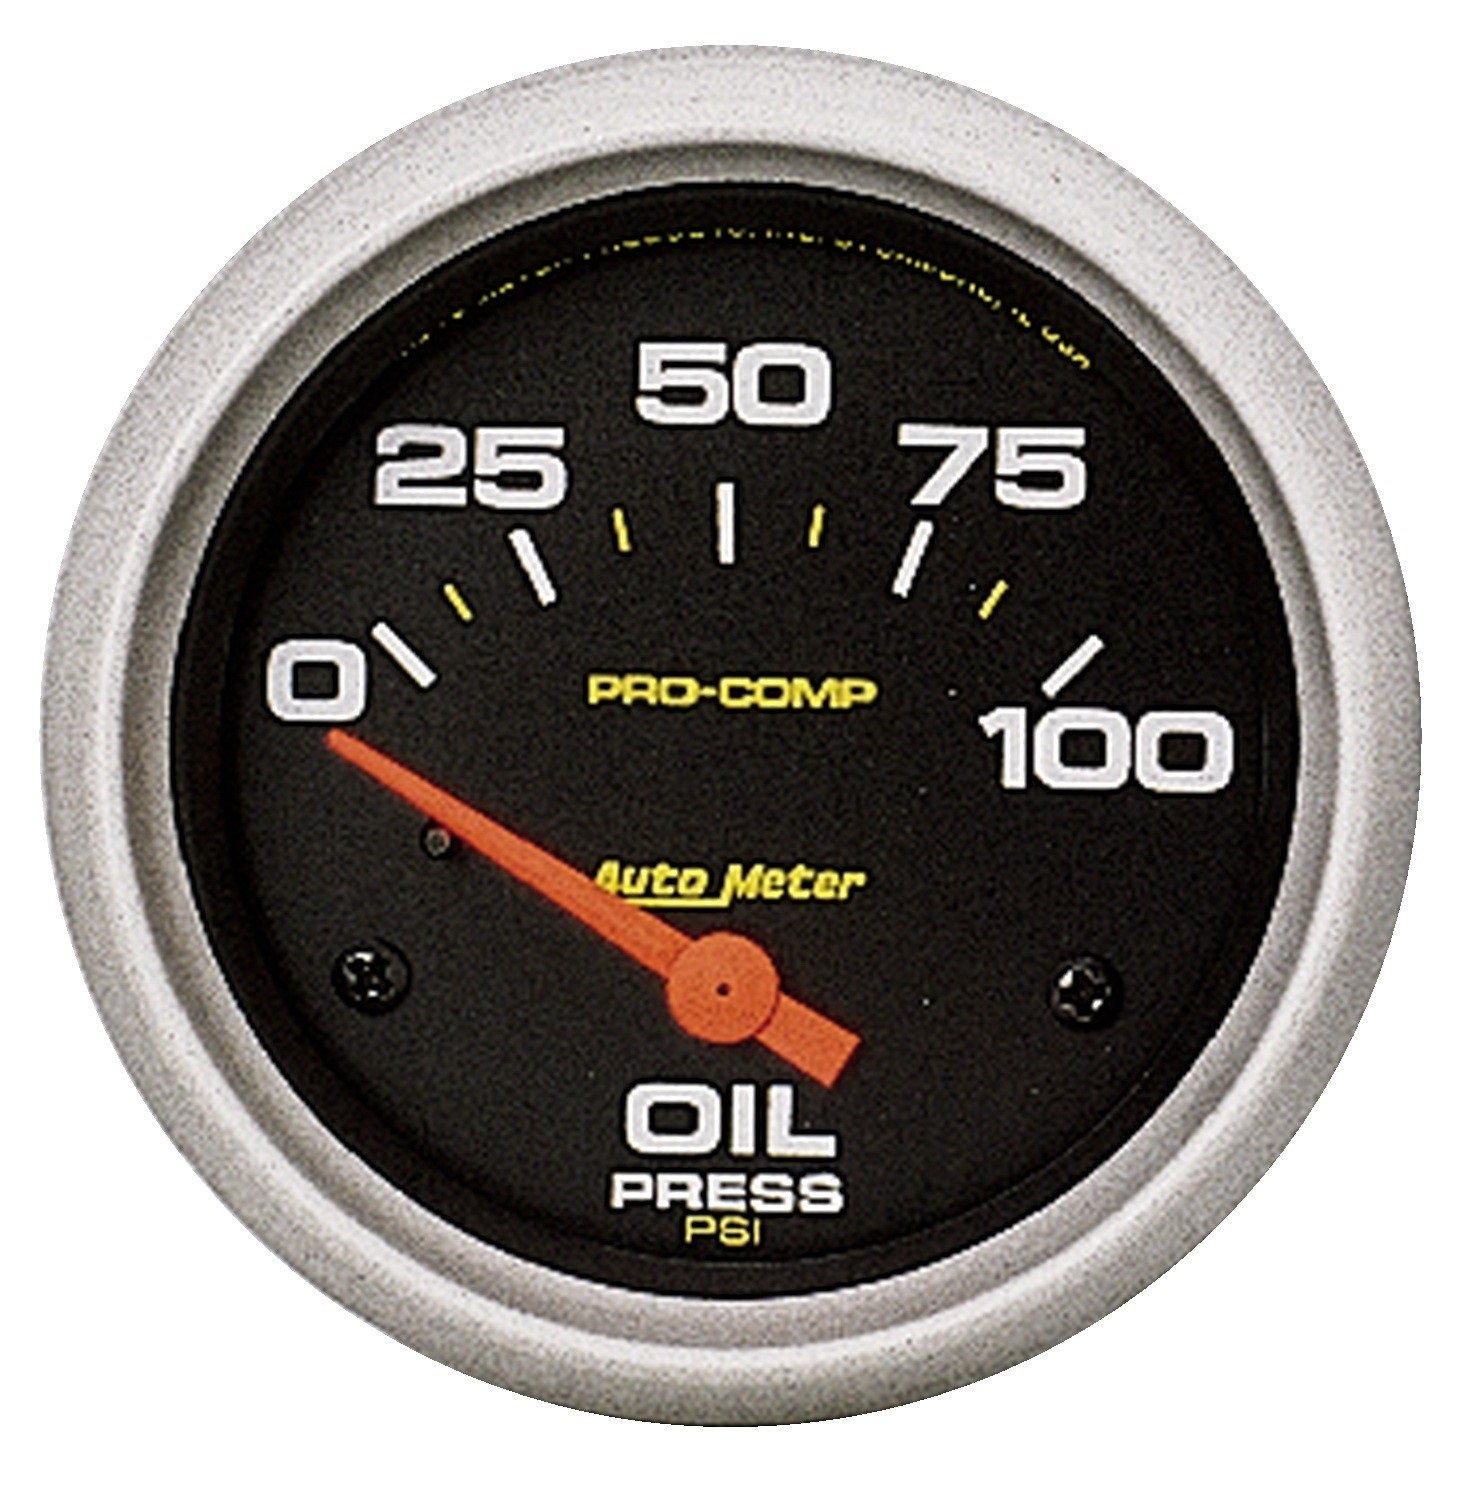 Auto Meter 5427 Pro-Comp Electric Oil Pressure Gauge by Auto Meter